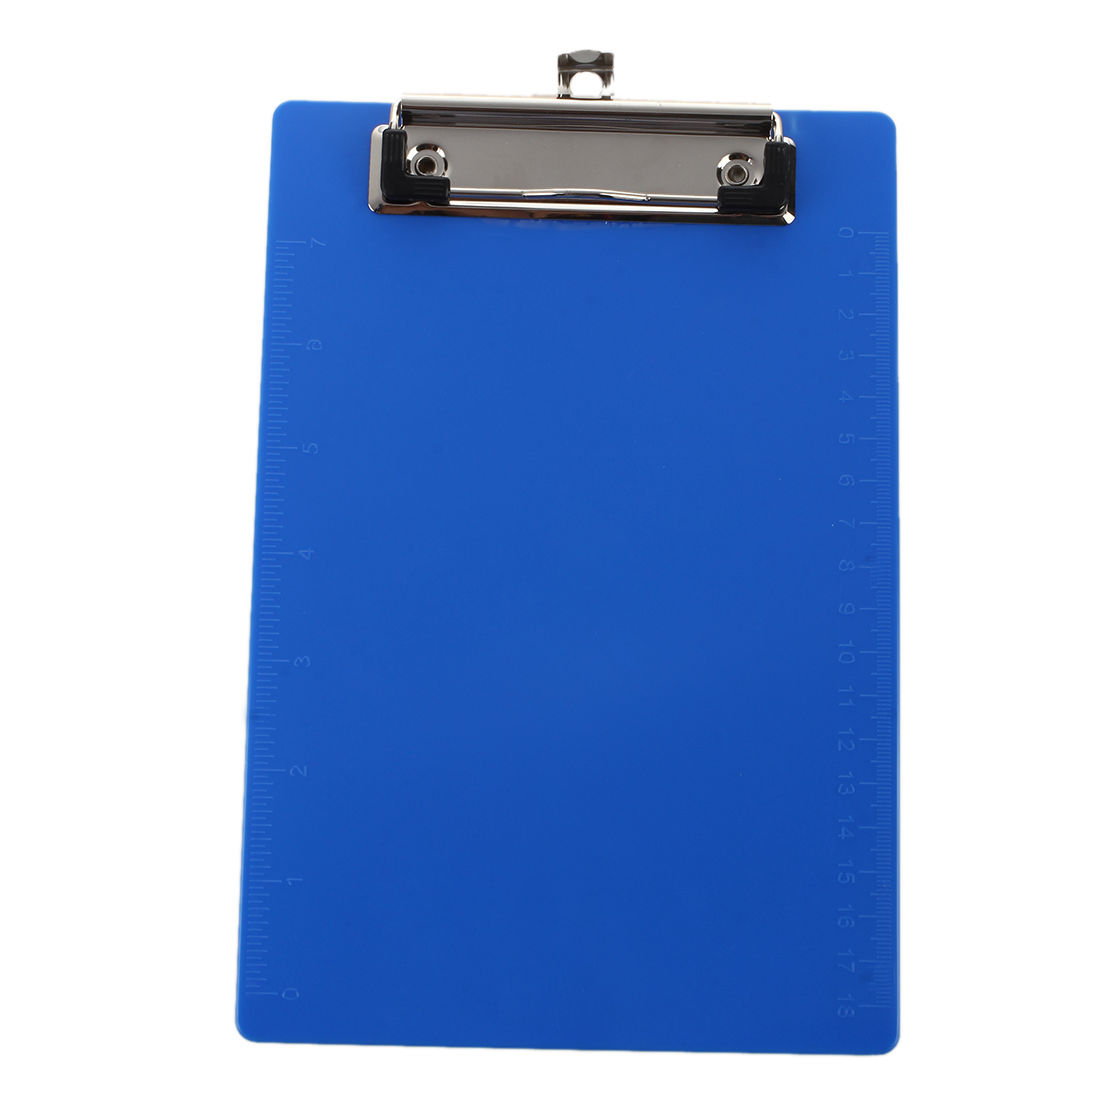 Office A5 Paper Holder Light Blue Plastic Board Clipboard 230 x 160 mm-SCLL